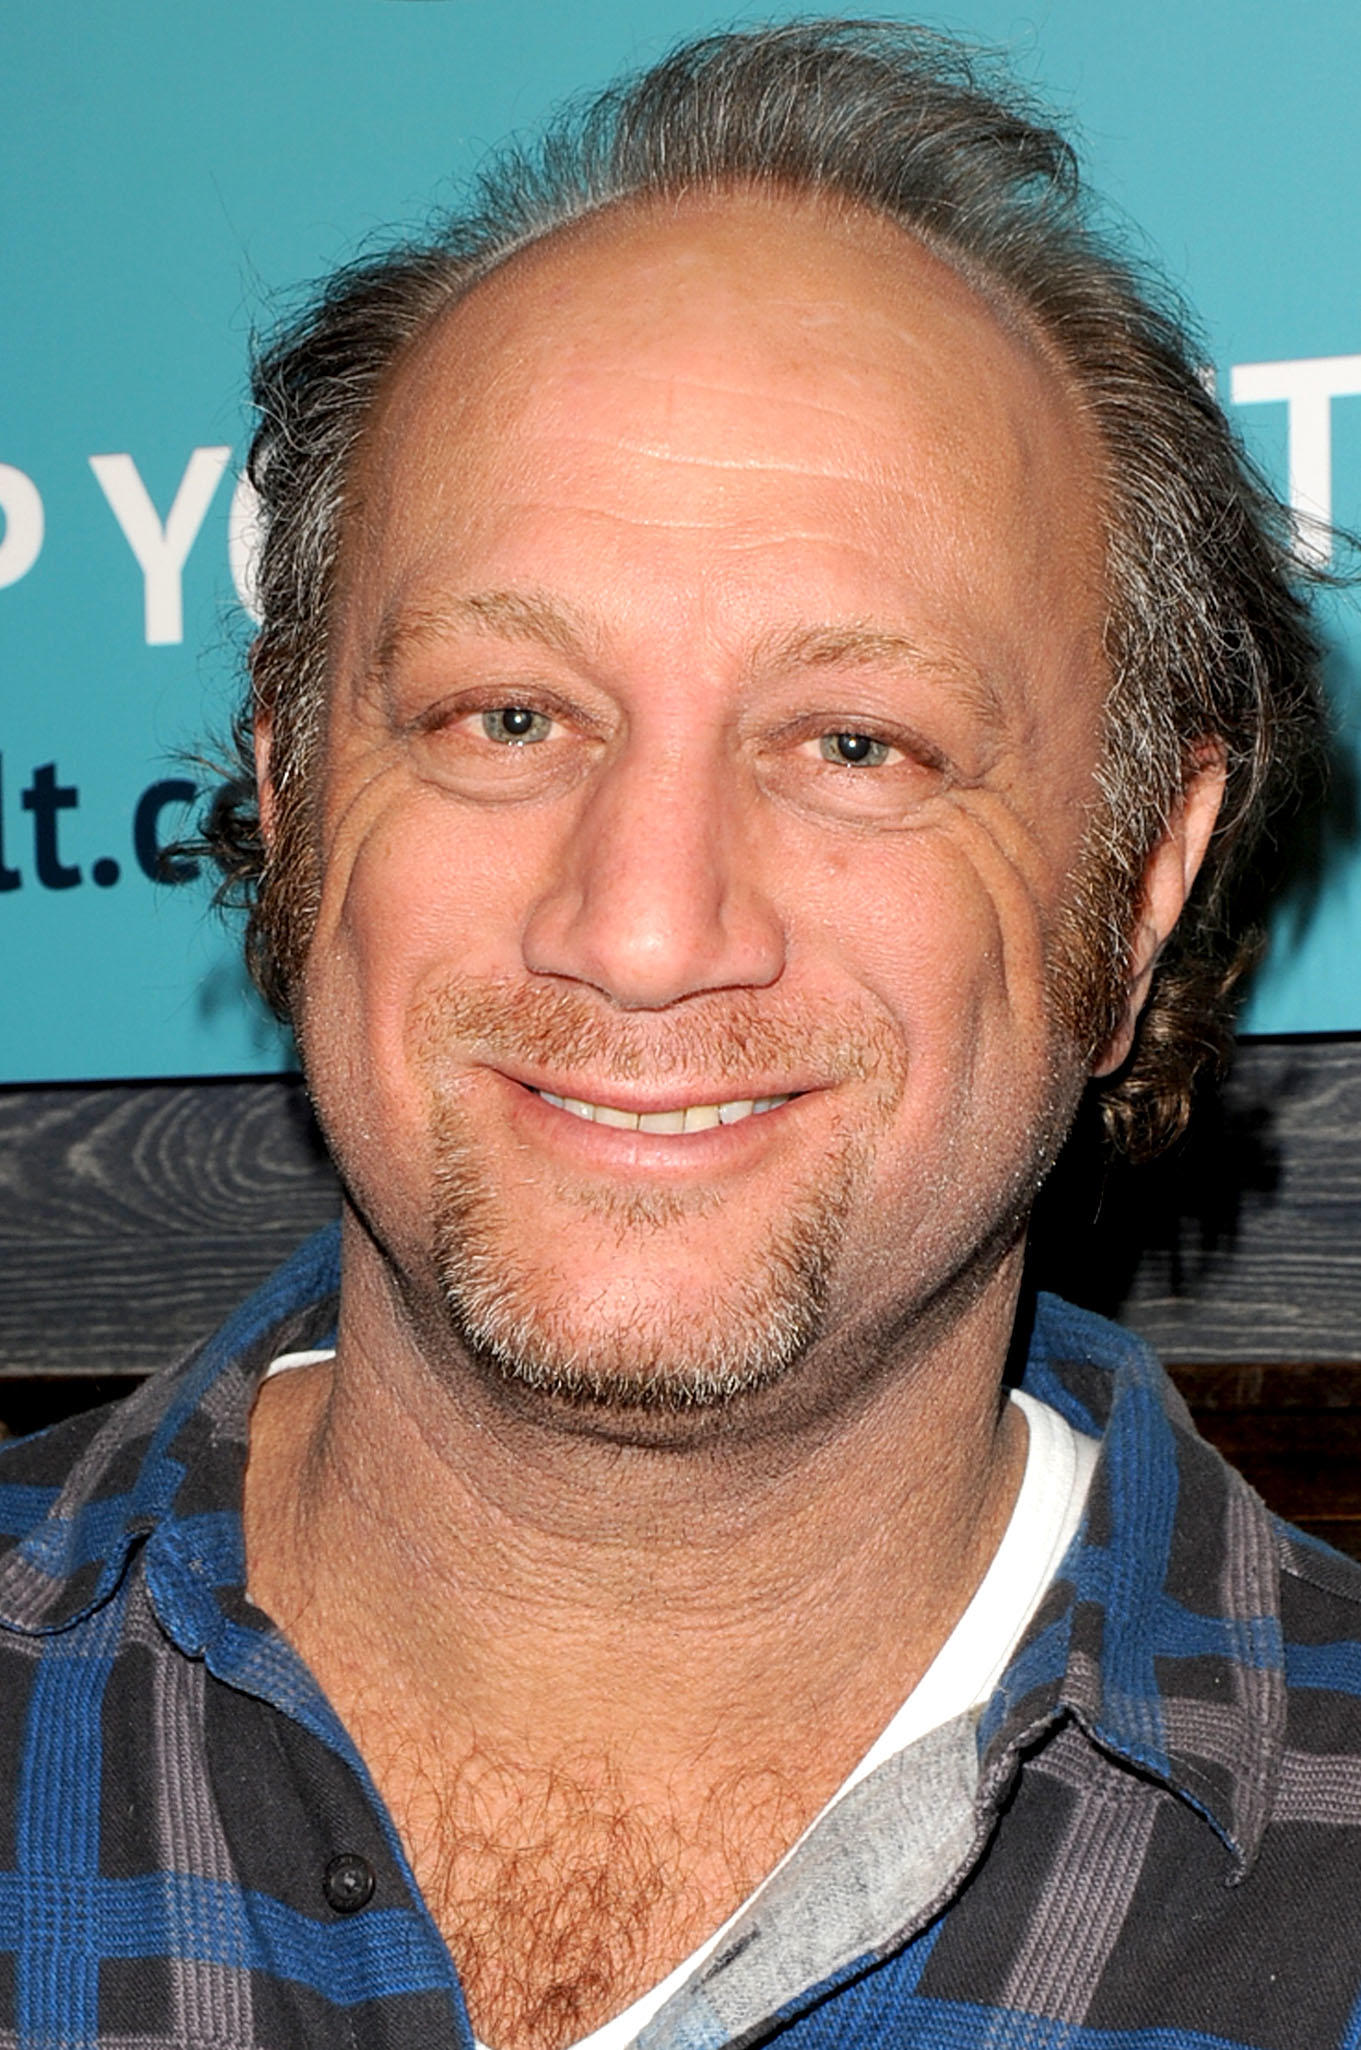 Scott Krinsky at Kari Feinstein's Style Lounge during the 2015 Sundance Film Festival.